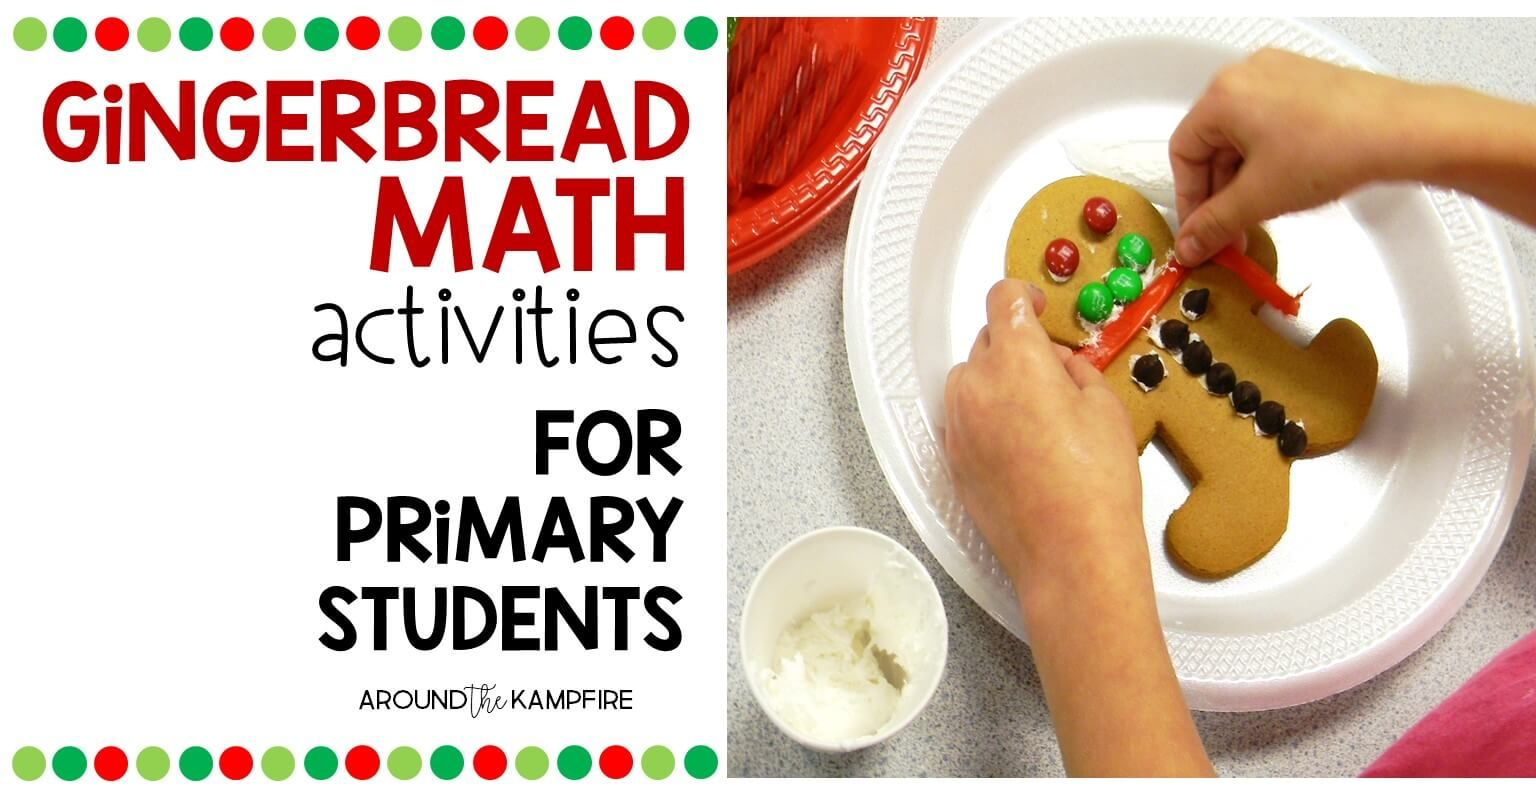 Gingerbread Math Activities